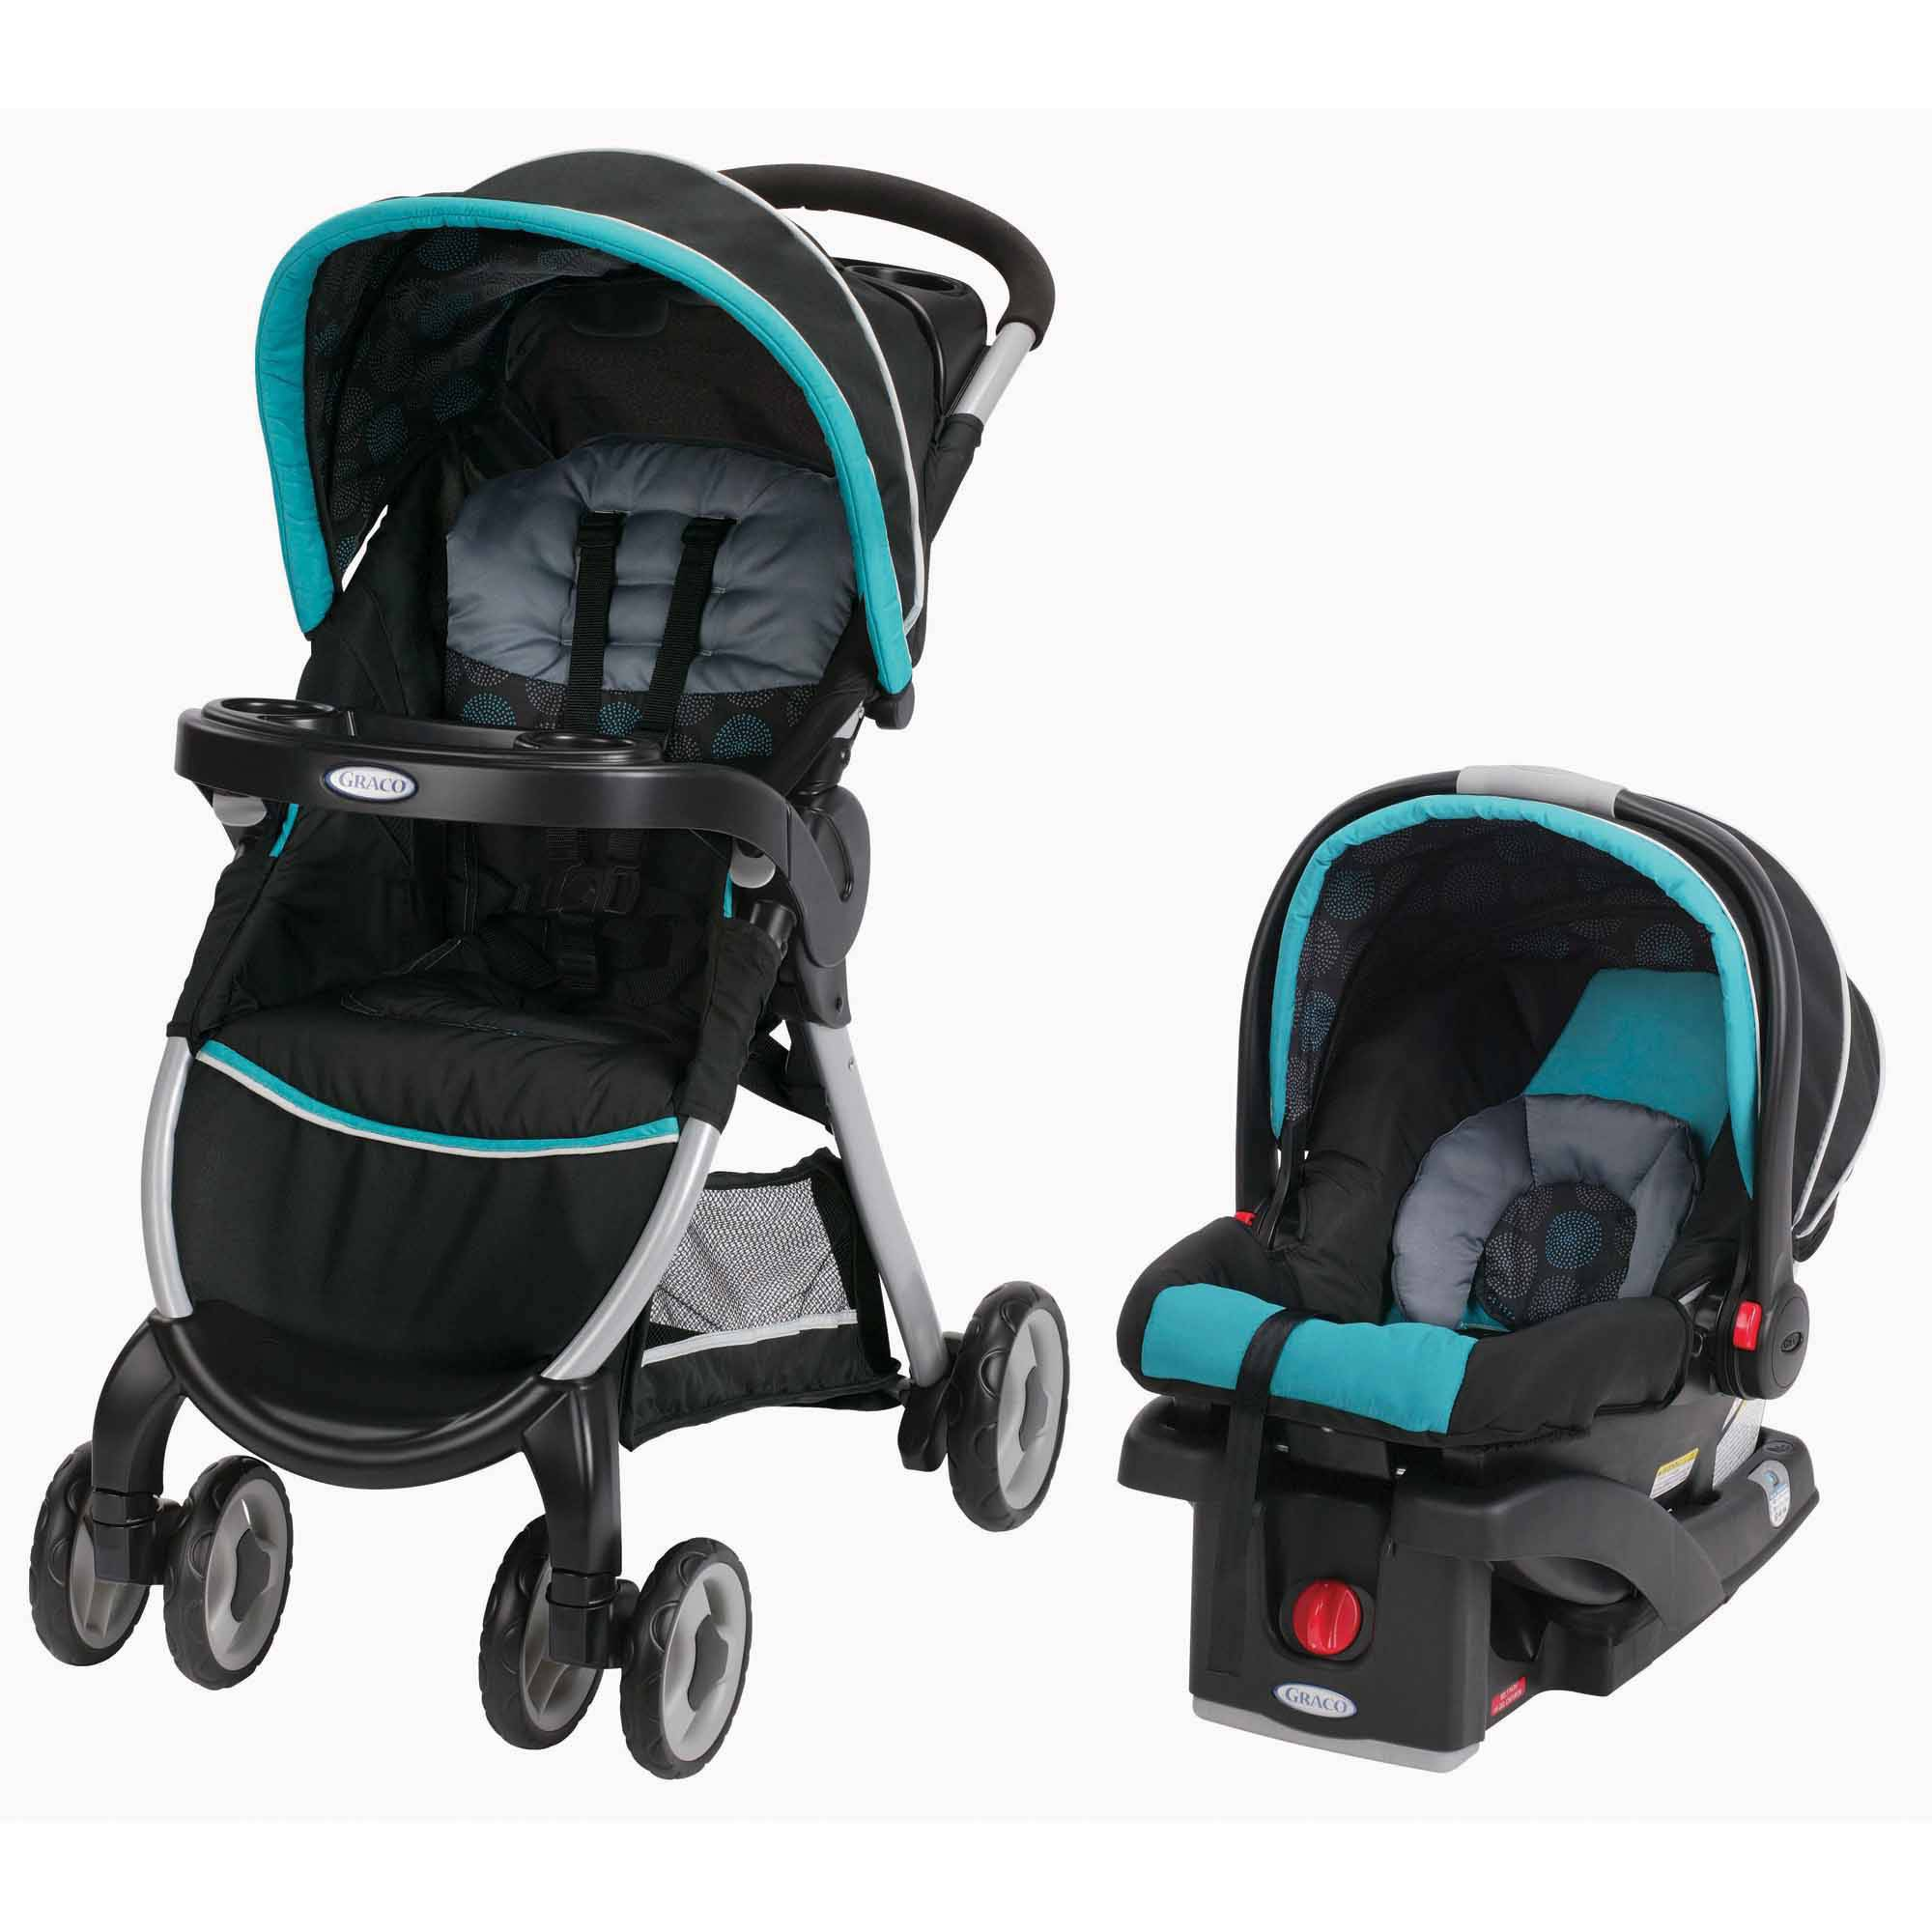 Graco fastaction fold click connect travel system car seat stroller combo choose your color walmart com